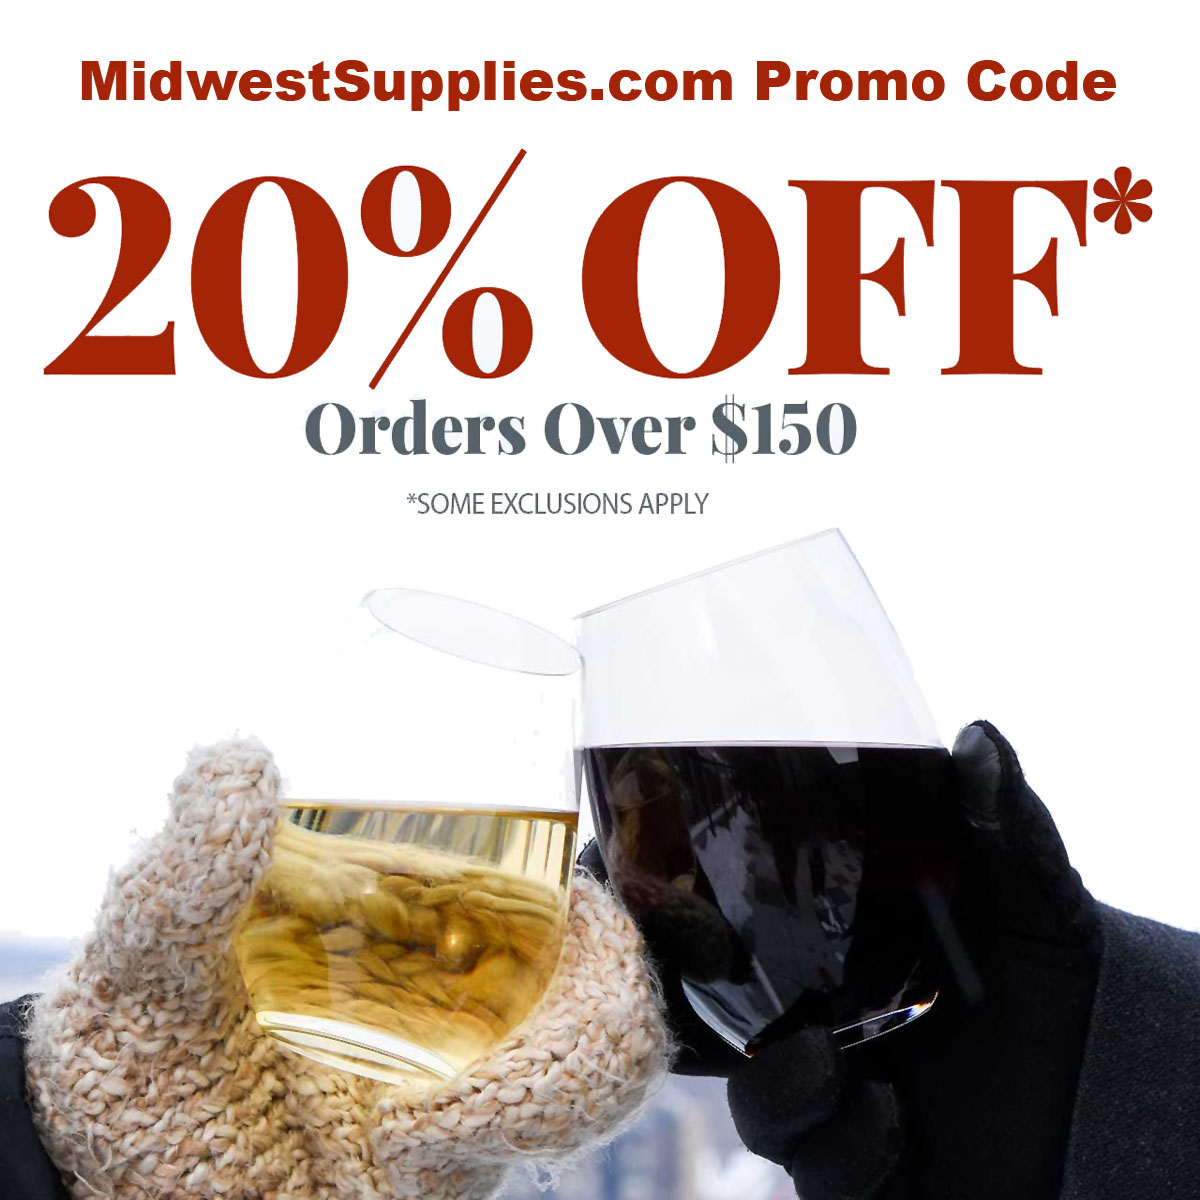 Home Wine Making Coupon Codes for Save 20% On Purchases Over $150 at Midwest Supplies with this MidwestSupplies.com promo code! Coupon Code